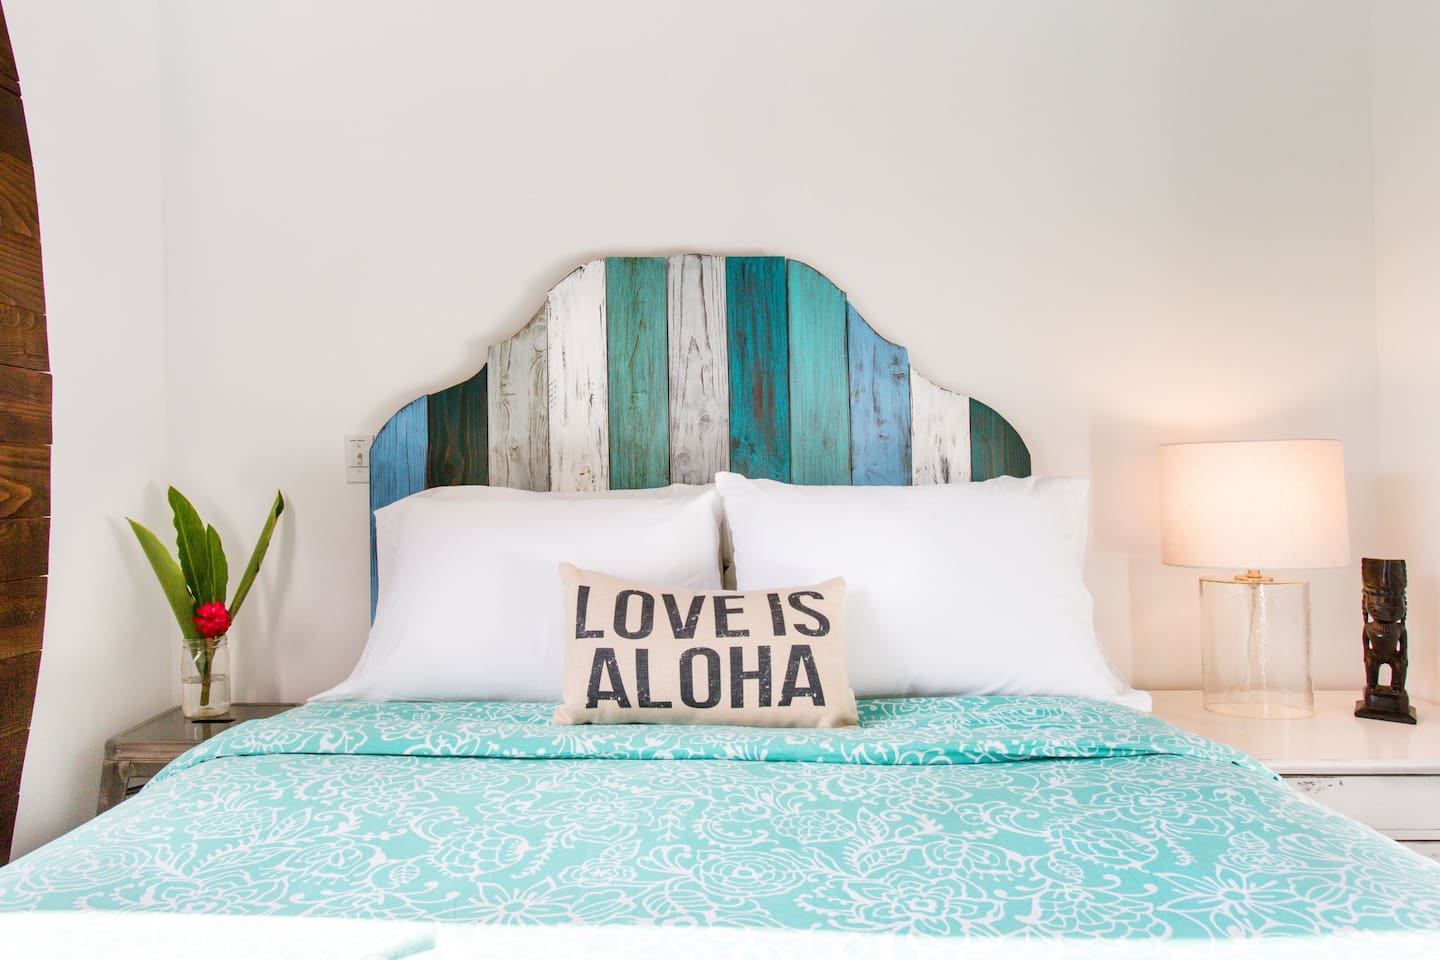 Each of our homes are unique, fun and creative. Filling your vacation with lots of love and aloha!